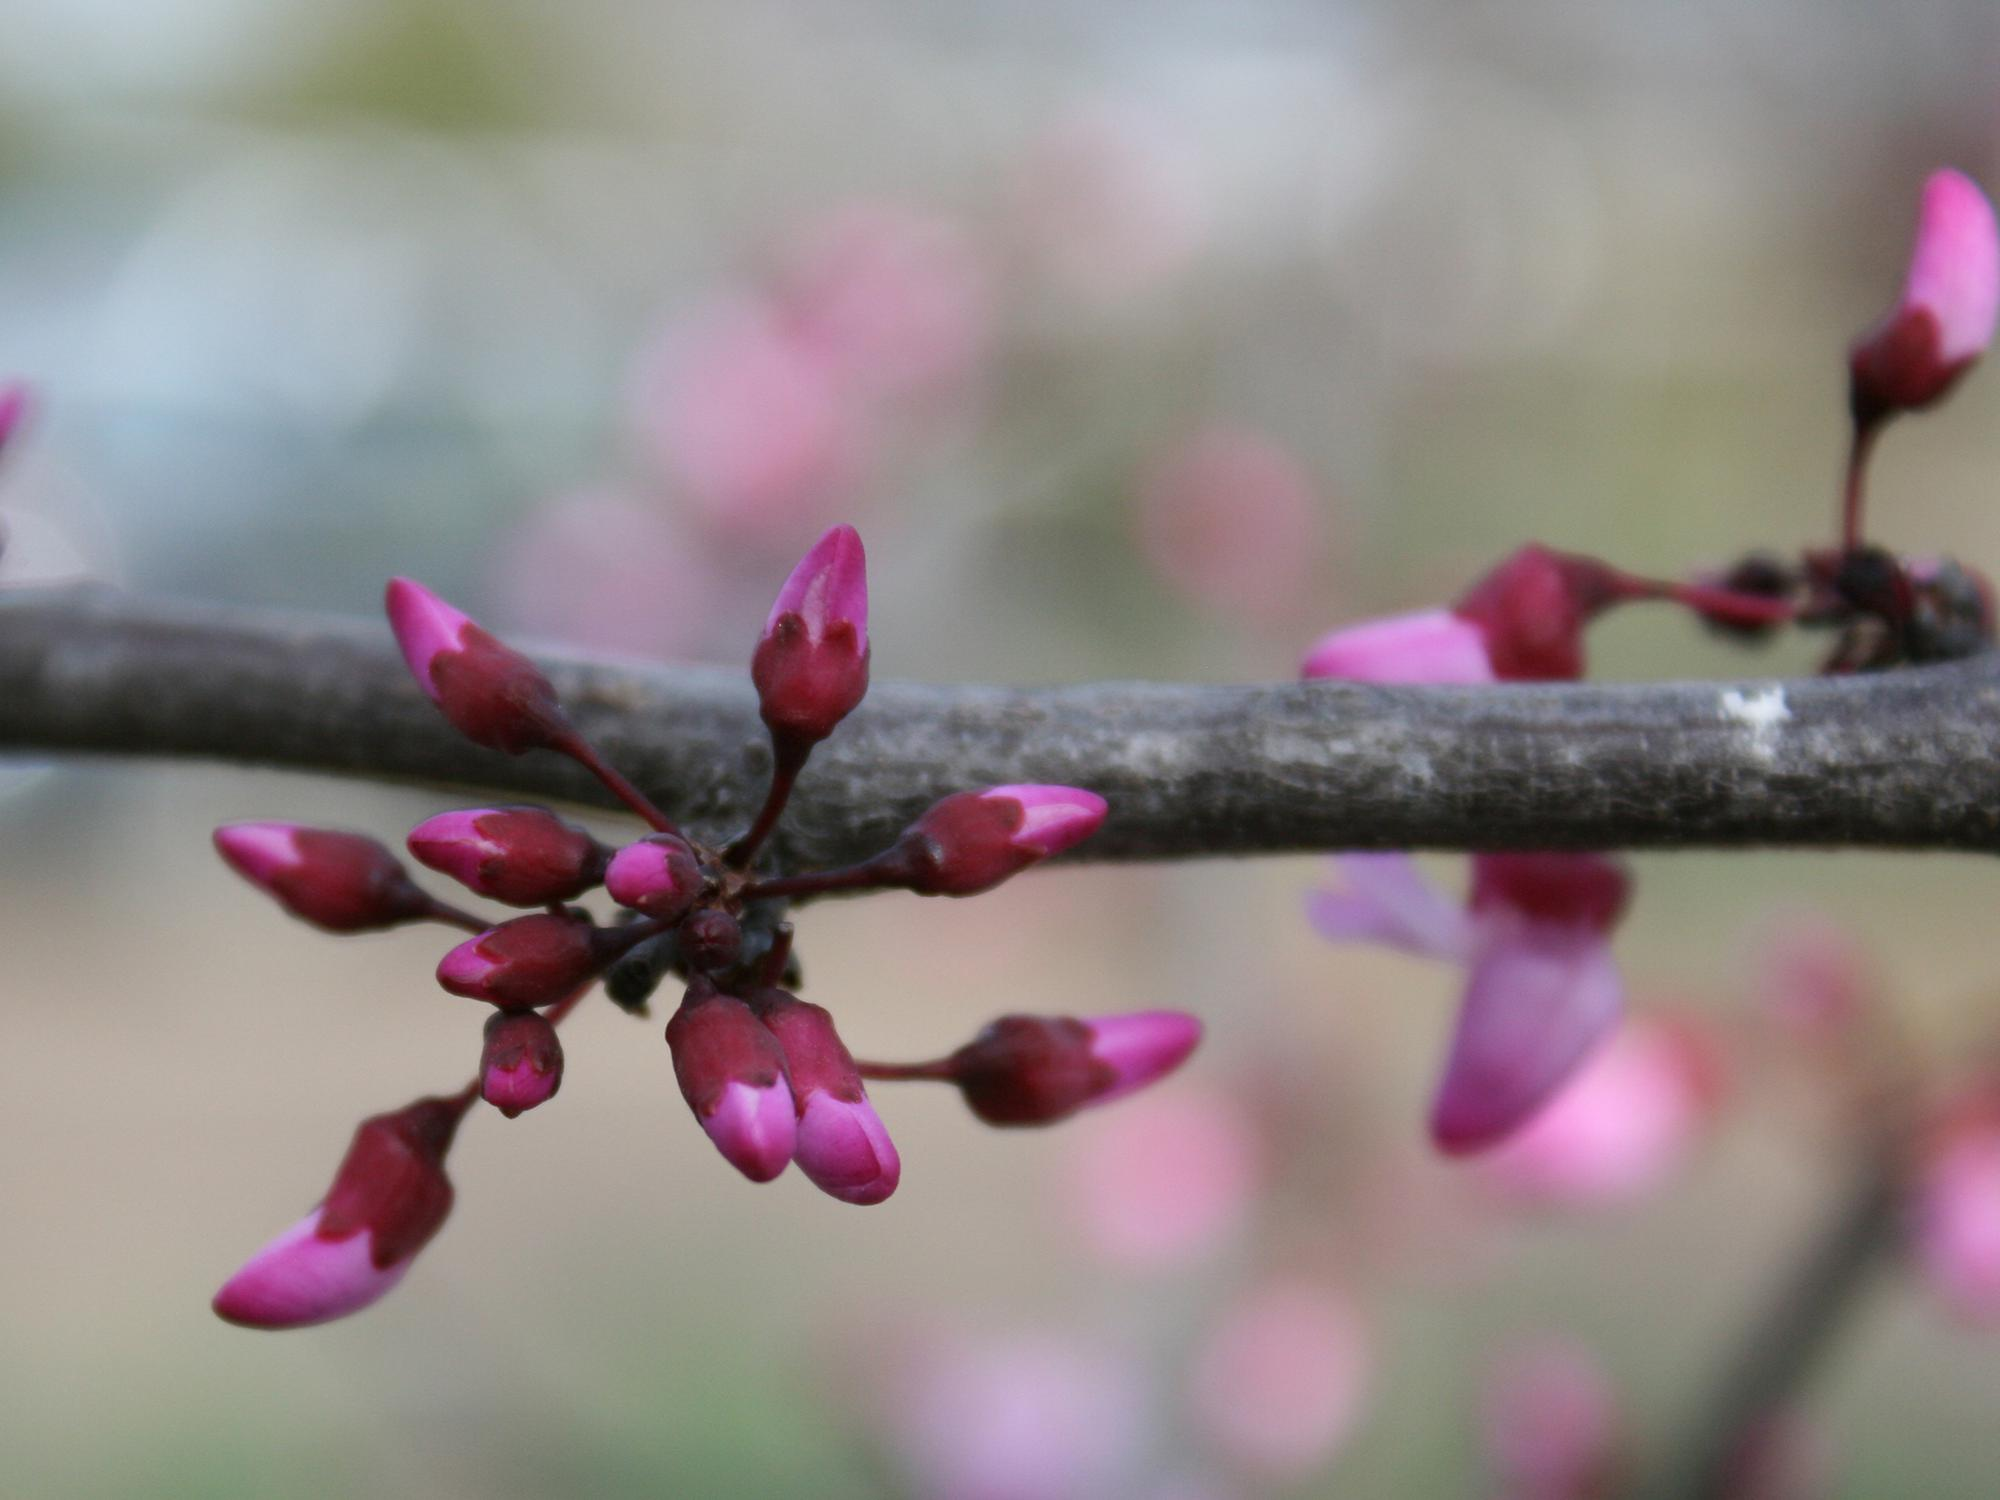 Tiny pink buds cluster in groups on a bare branch.